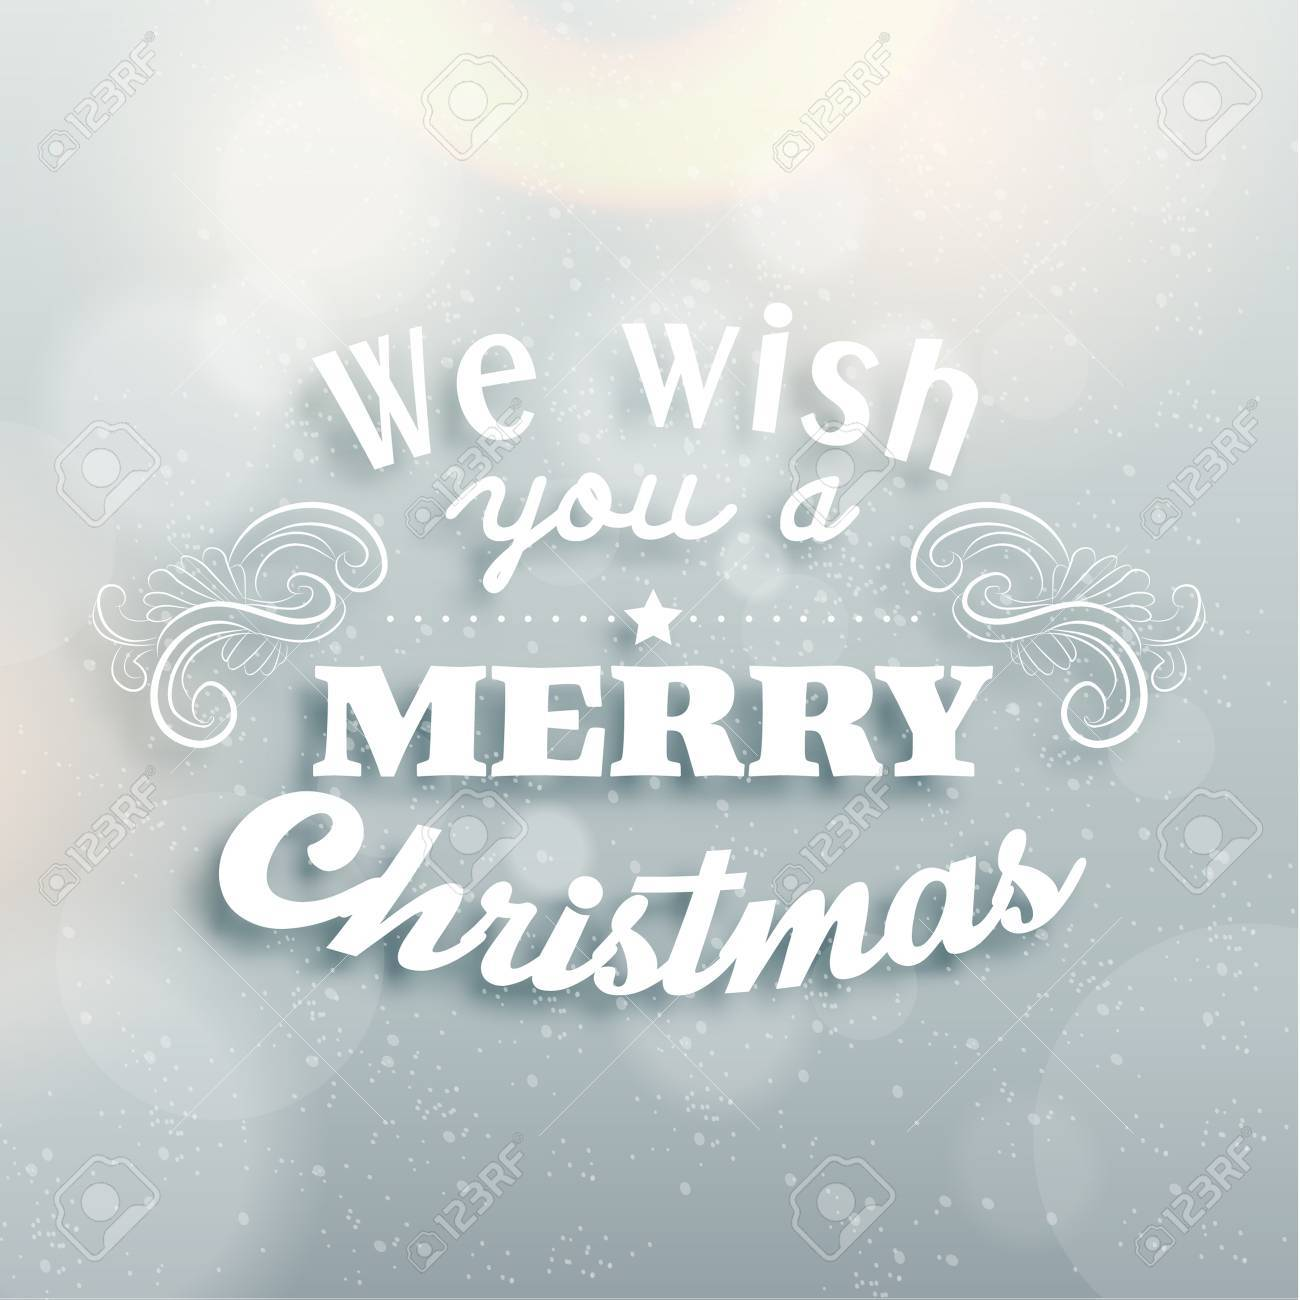 Merry Christmas Season Greetings Quote Vector Design Royalty Free